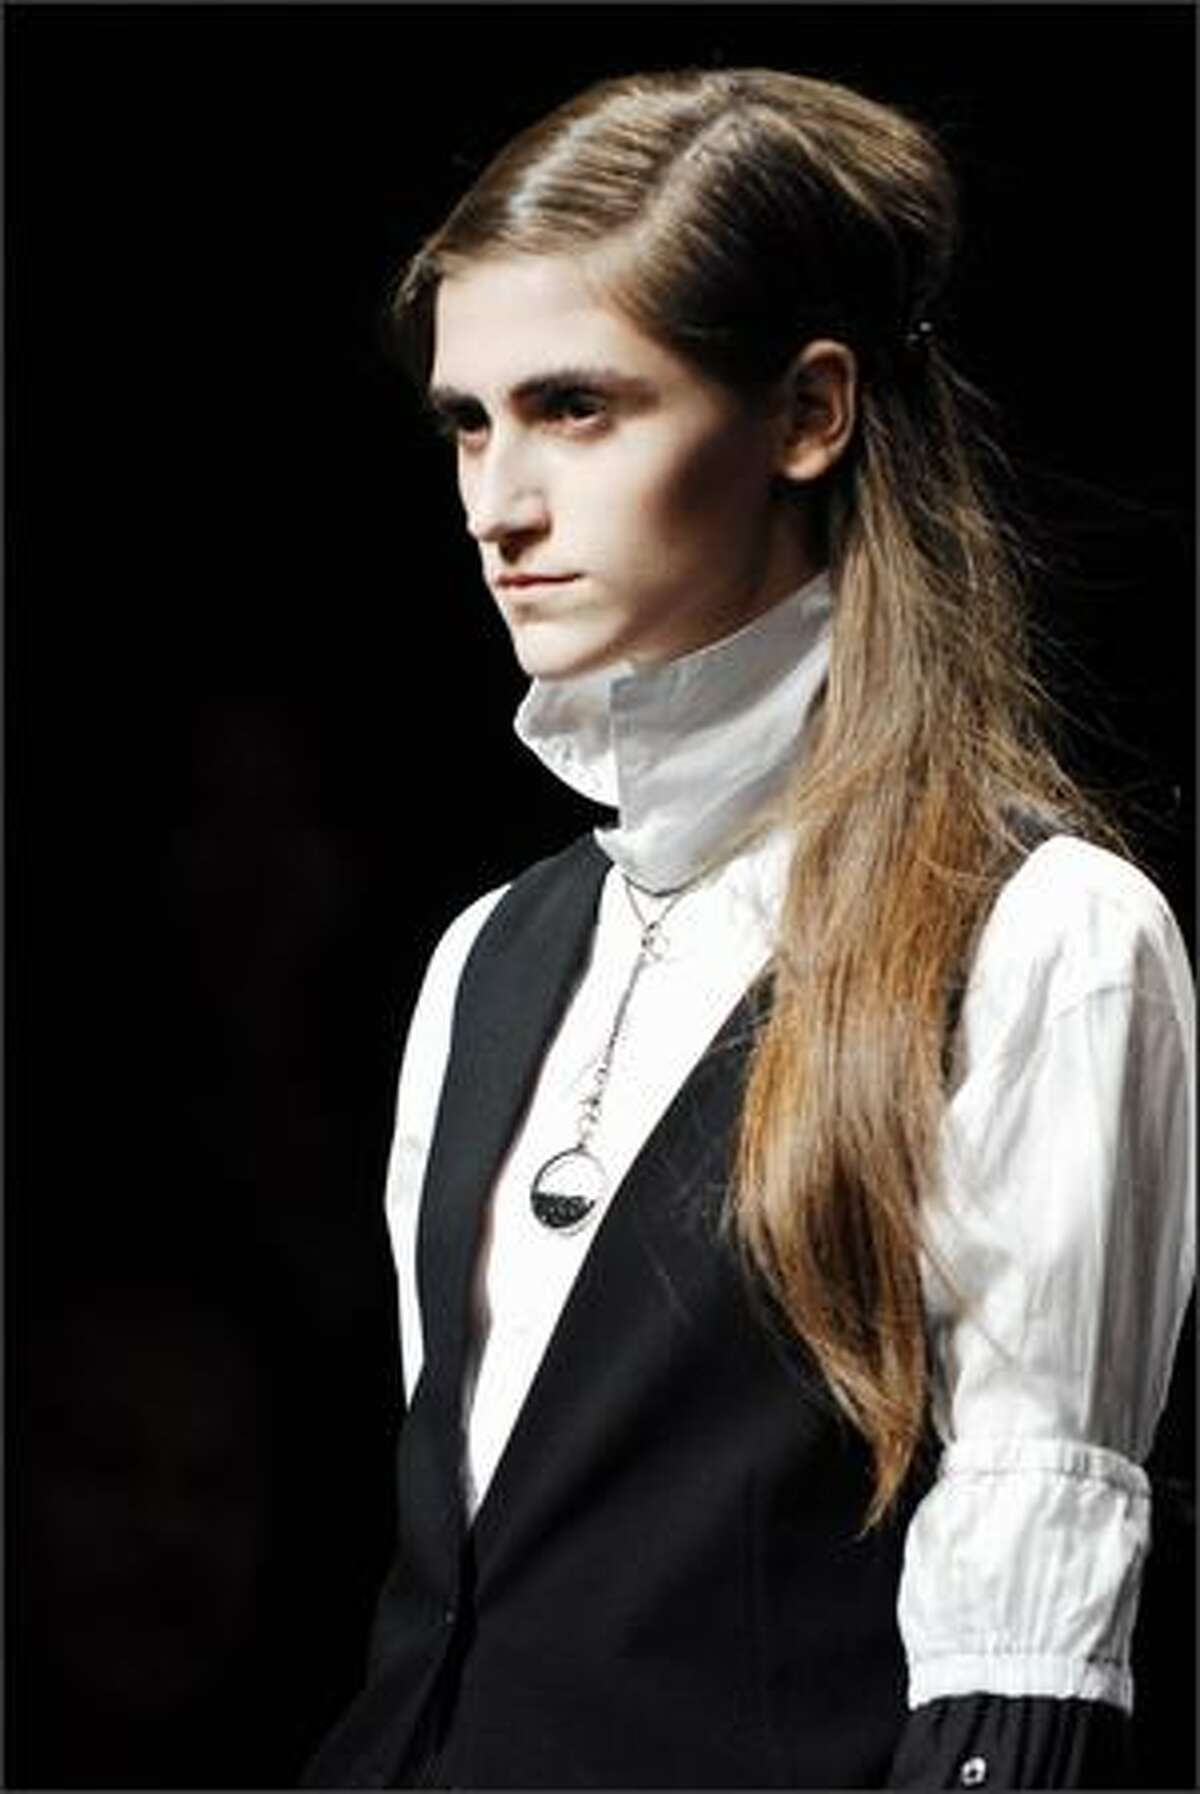 A model presents a creation by Belgian designer Ann Demeulemeester during the Spring/Summer 2008 ready-to-wear collection show in Paris.